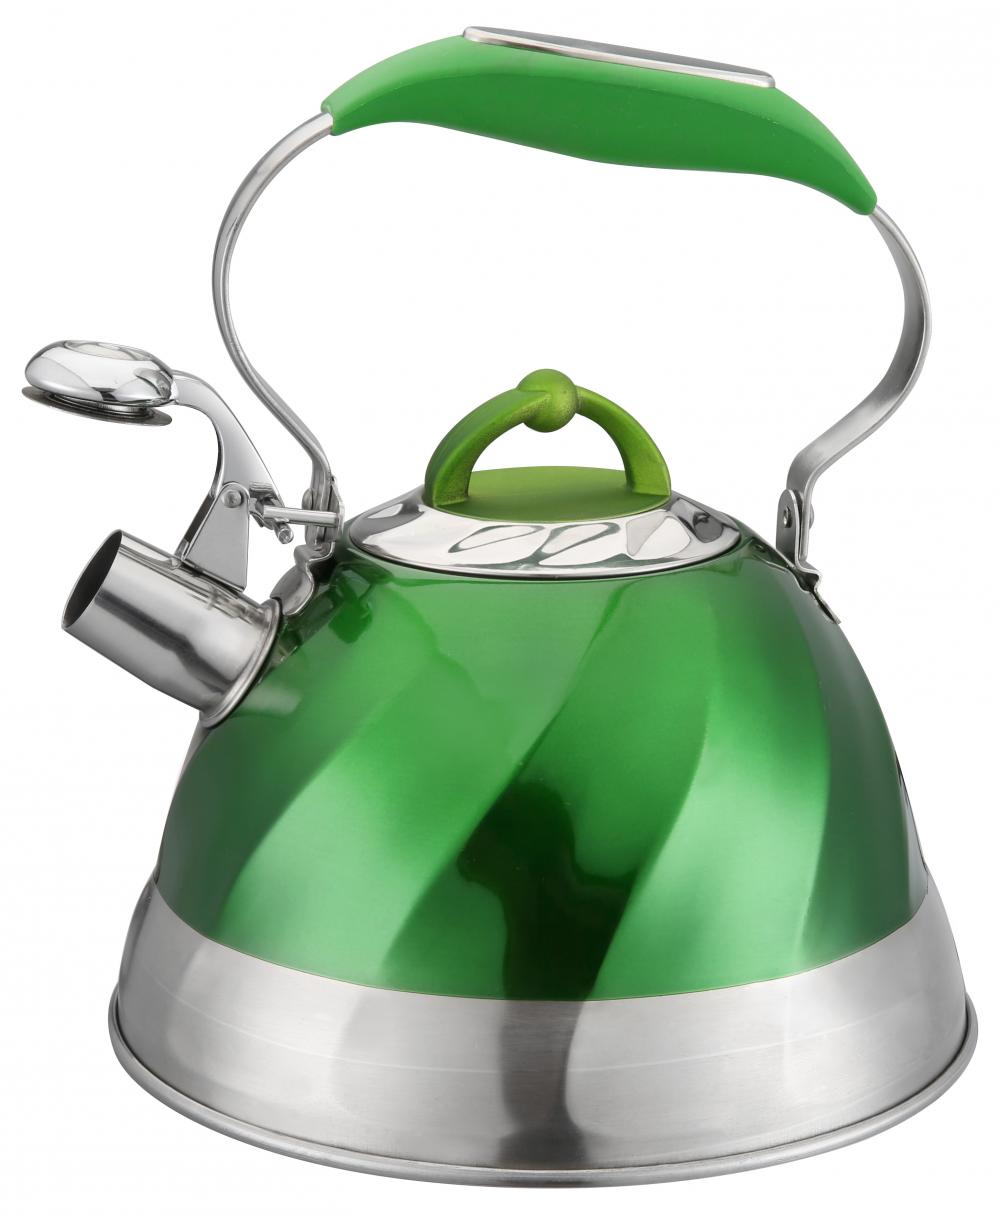 Building Green Heat Resistant Handle Stainless Steel Whistling Kettle